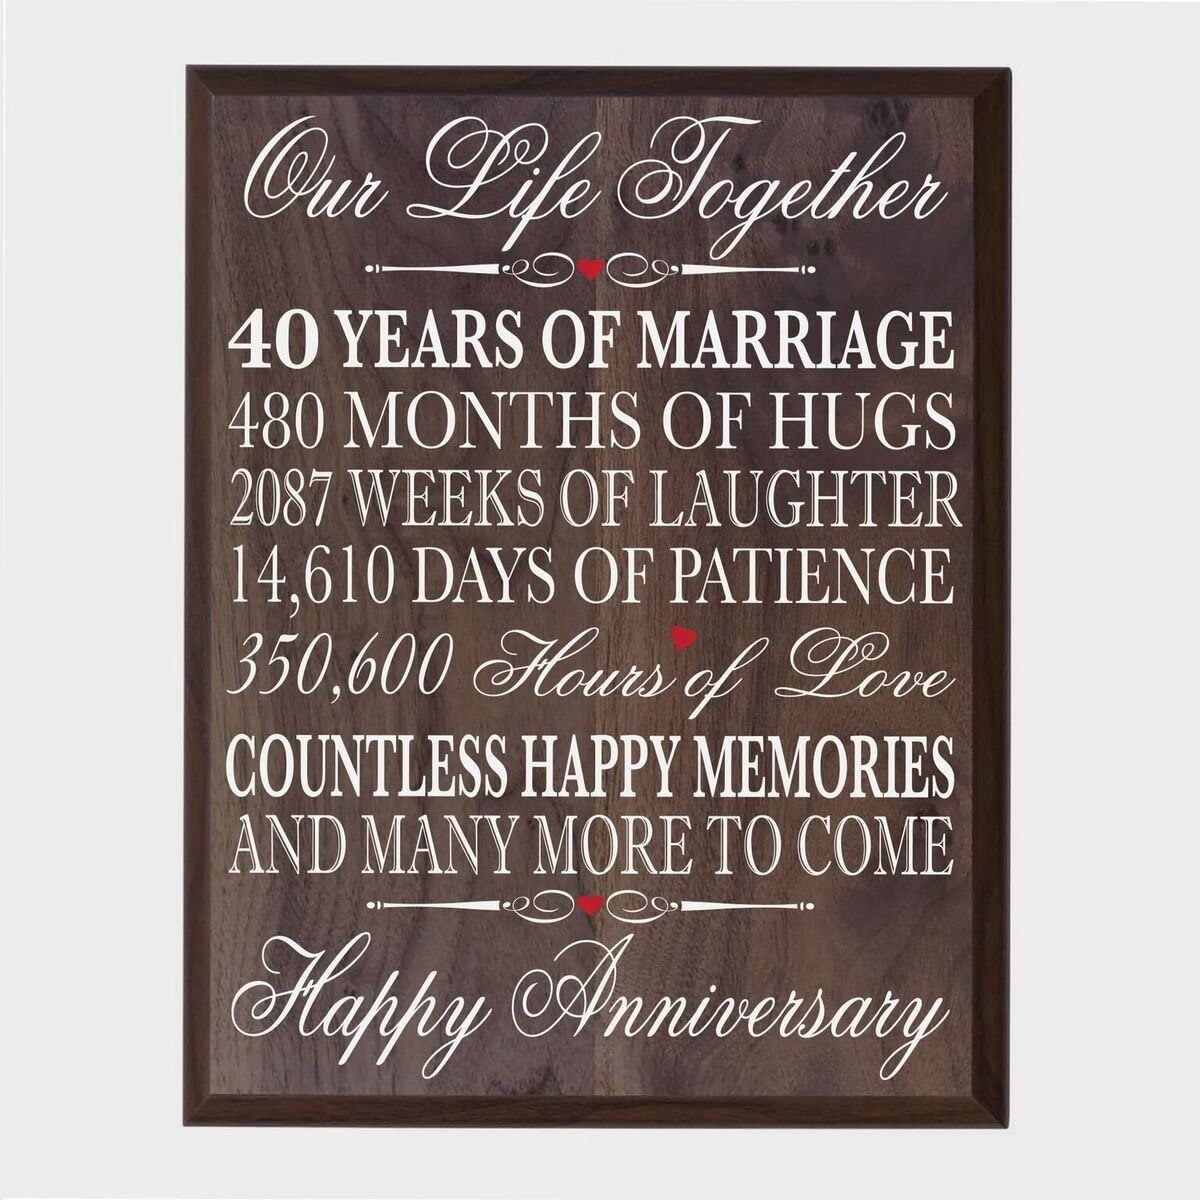 "9th Wedding Anniversary Wall Plaque Gifts for Couple, 9th Anniversary  Gifts for Her,9th Wedding Anniversary Gifts for Him 9"" WX 9"" H Wall  Plaque"